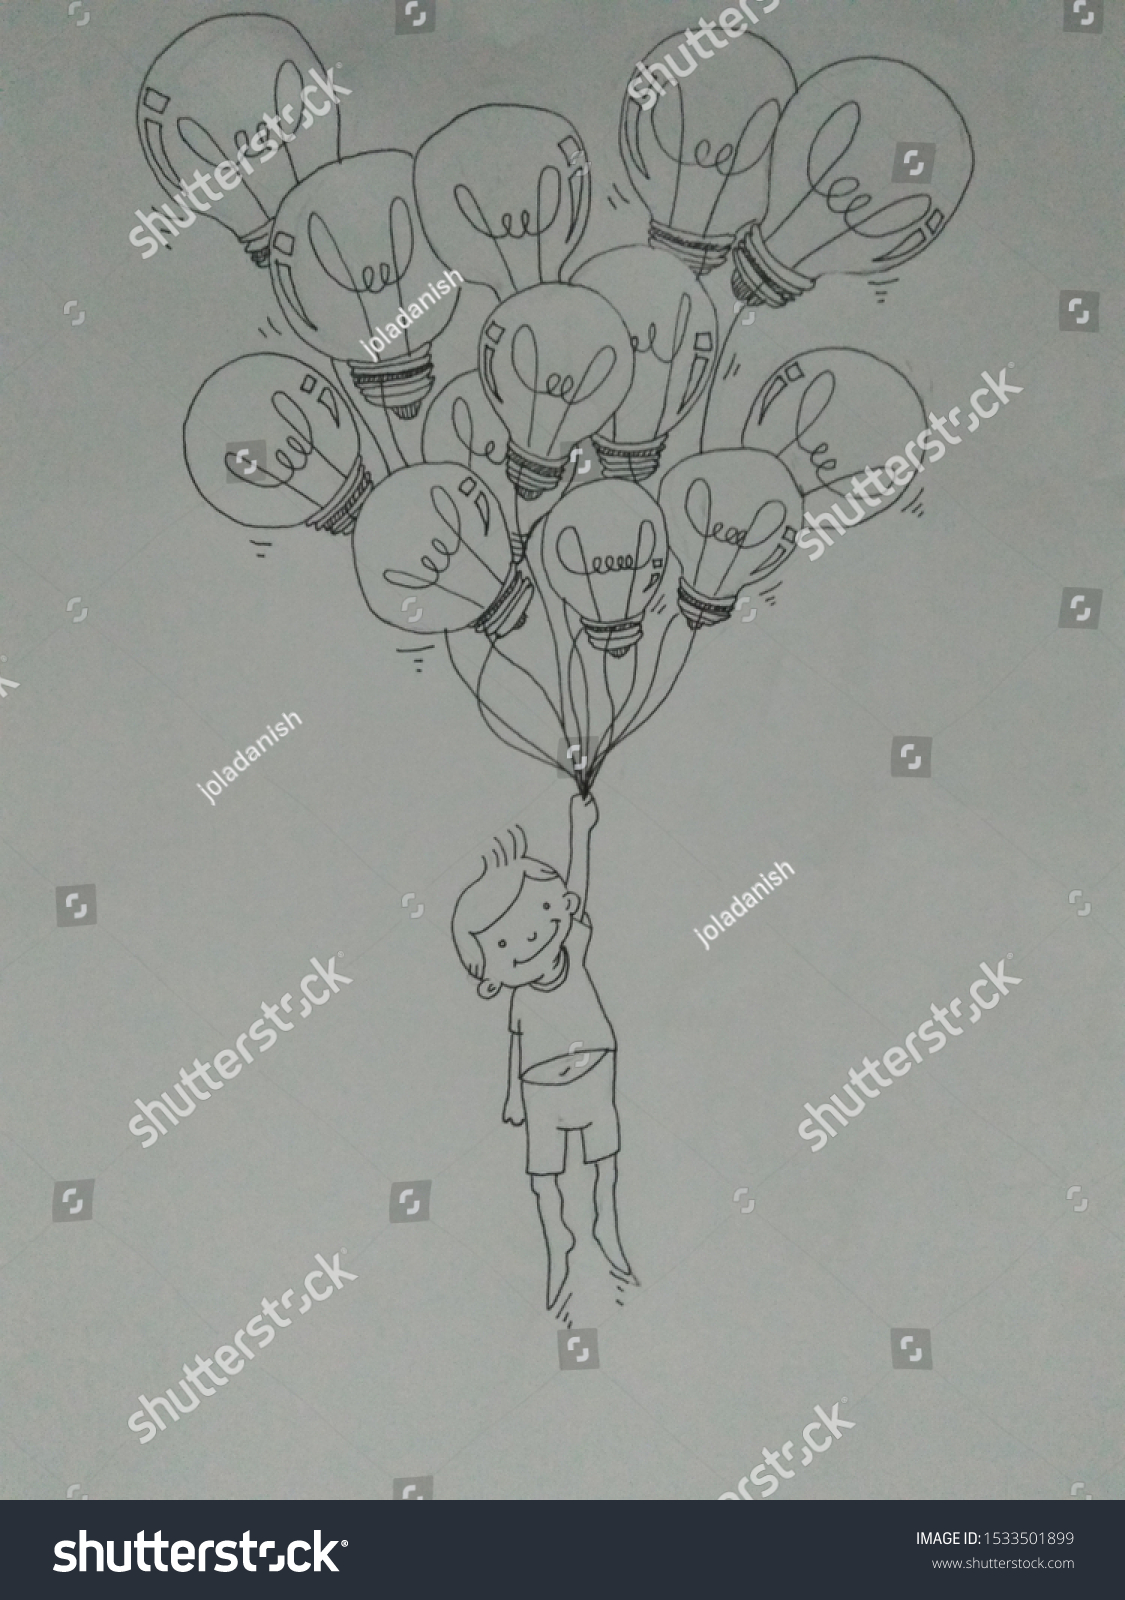 Boy carried or bring bulb balloon #1533501899